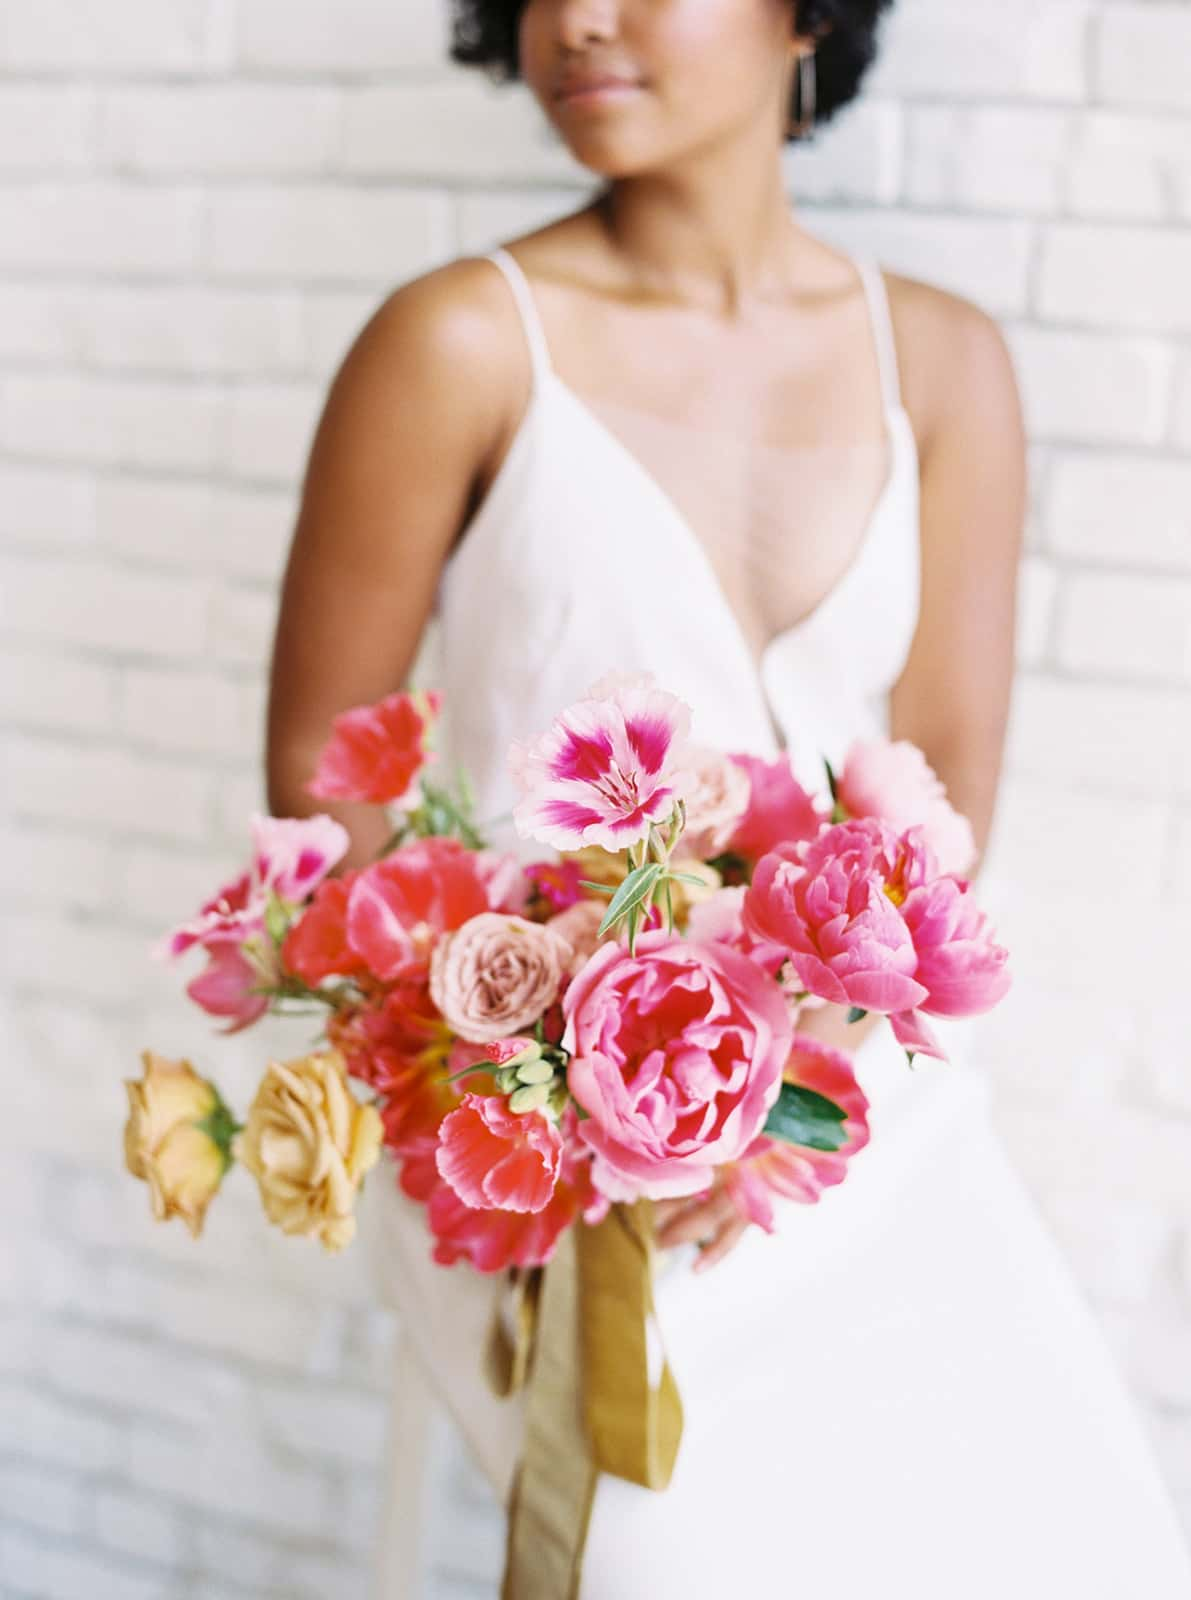 Bride holding lush bridal bouquet by Color Theory Collective